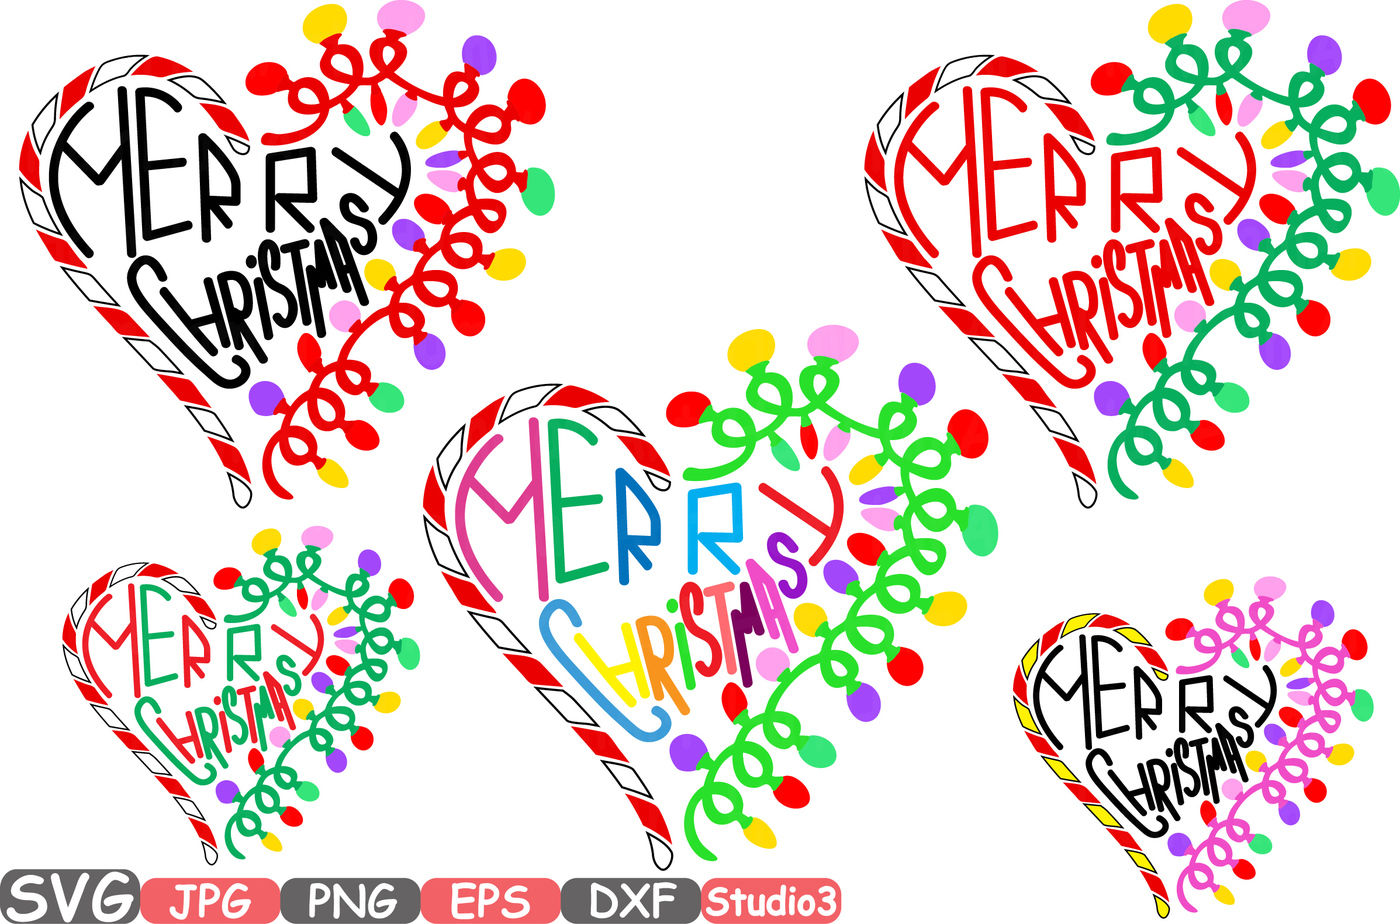 Merry Christmas Heart Silhouette Svg Cutting Files Digital Clip